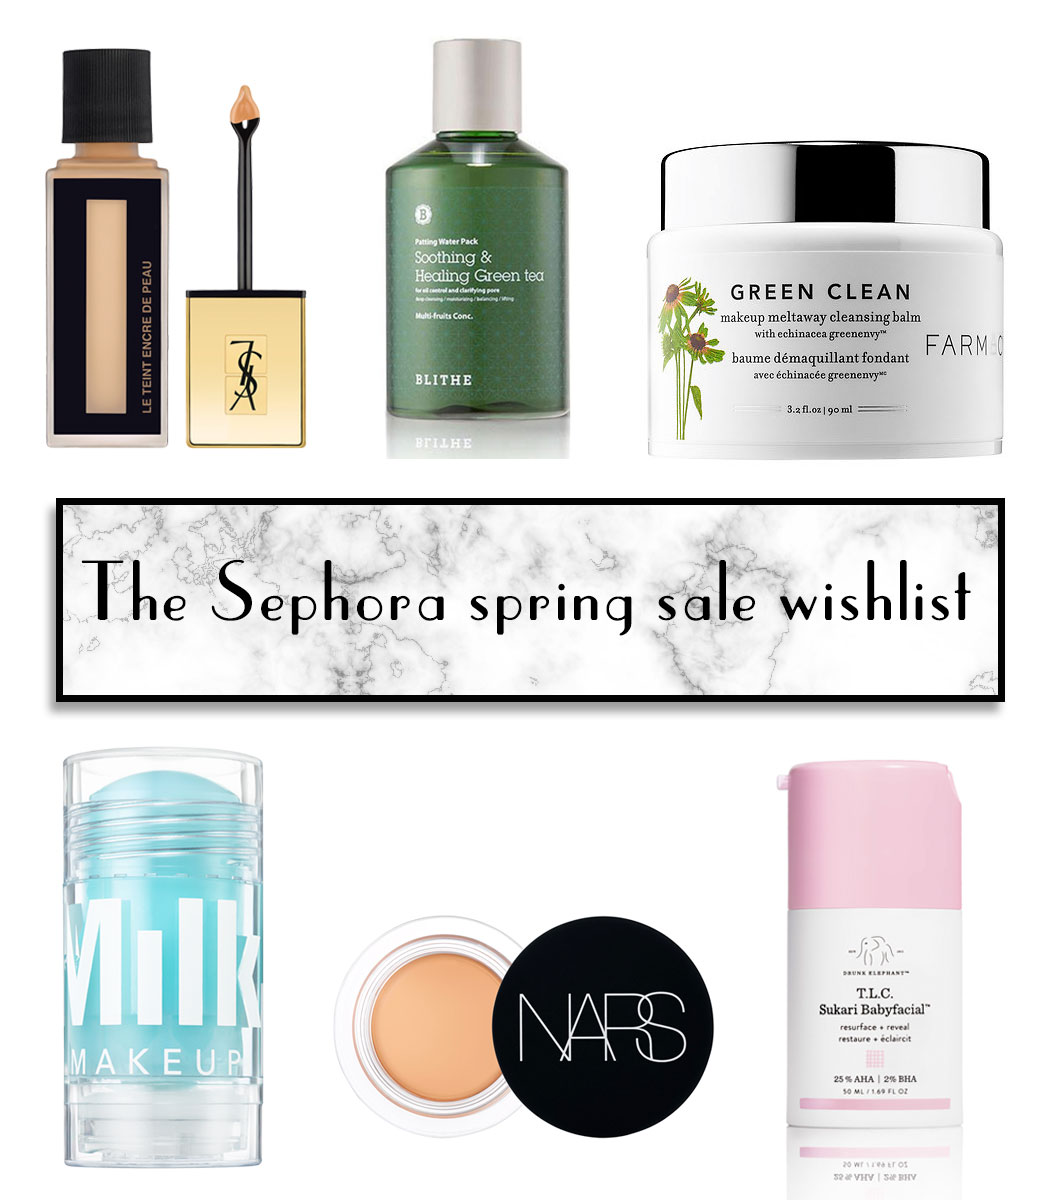 Sephora spring sale wishlist. Drunk Elephant Babyfacial, Blithe Splash Mask, YSL fusion ink, MILK Cooling Water Stick, NARS soft matte concealer pot, Farmacy Green clean cleansing balm